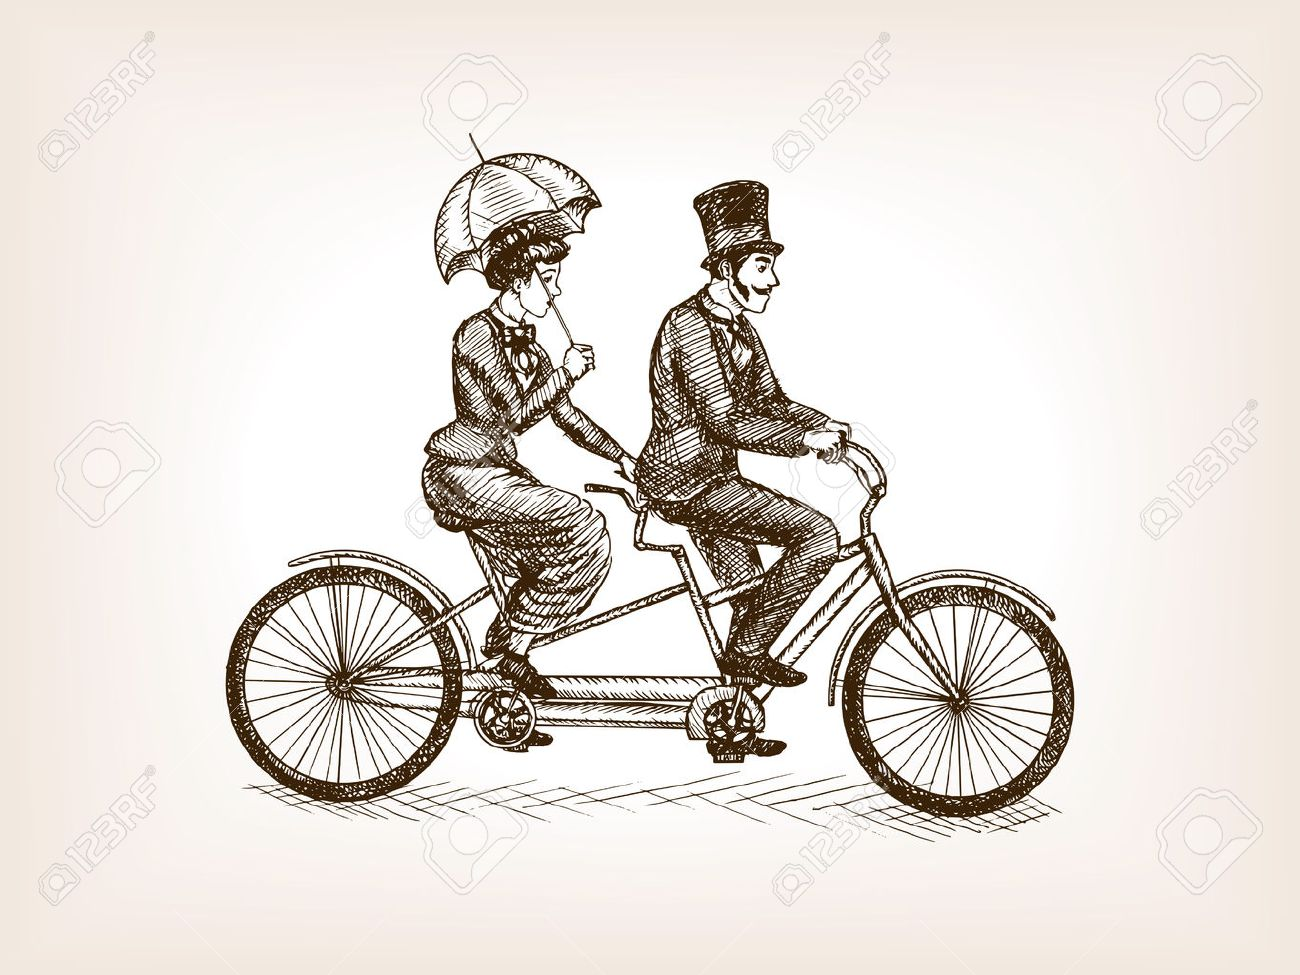 1300x975 Vintage Lady And Gentleman Ride Tandem Bicycle Sketch Style Vector